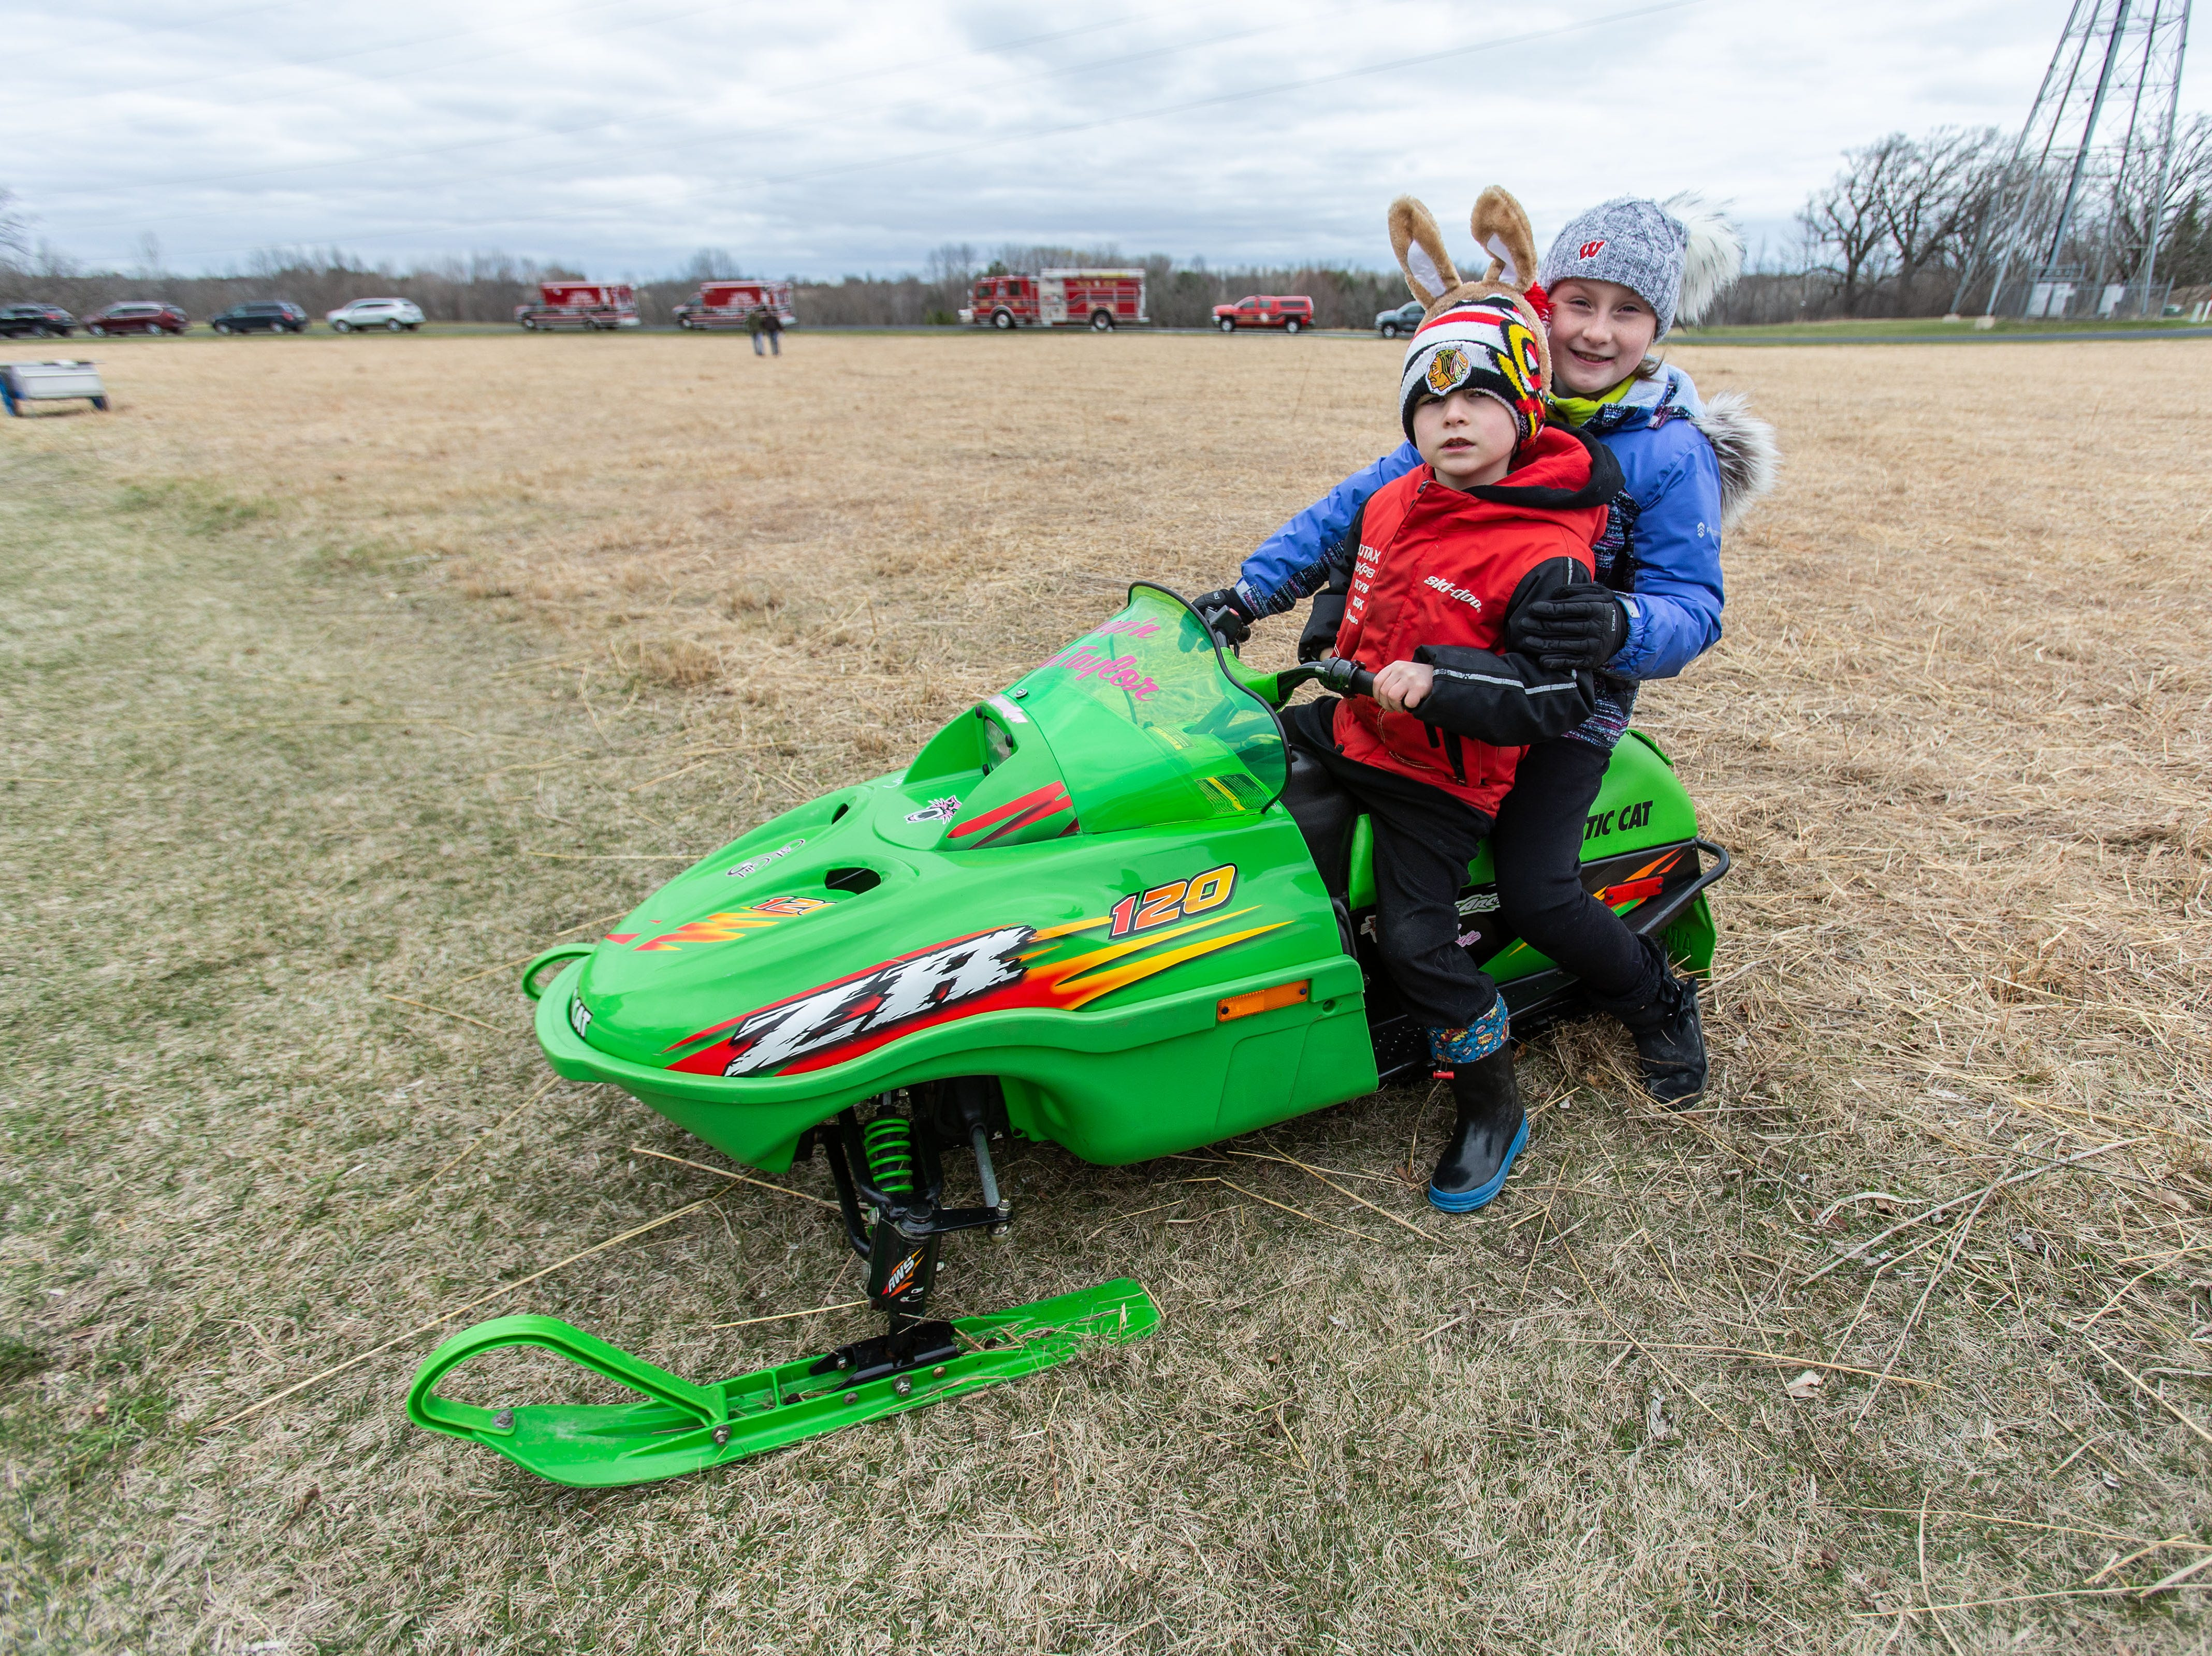 Cole Taylor, 6, and his sister Leah, 9, of Sussex pose for a photo at the Sussex Sled Bugs display during the annual Easter Extravaganza egg hunt in Lisbon Community Park on Saturday, April 13, 2019. Sponsored by the Lisbon Park Department, the hunt features treats from area businesses and organizations, pictures with the Easter Bunny, local emergency response vehicles and more.